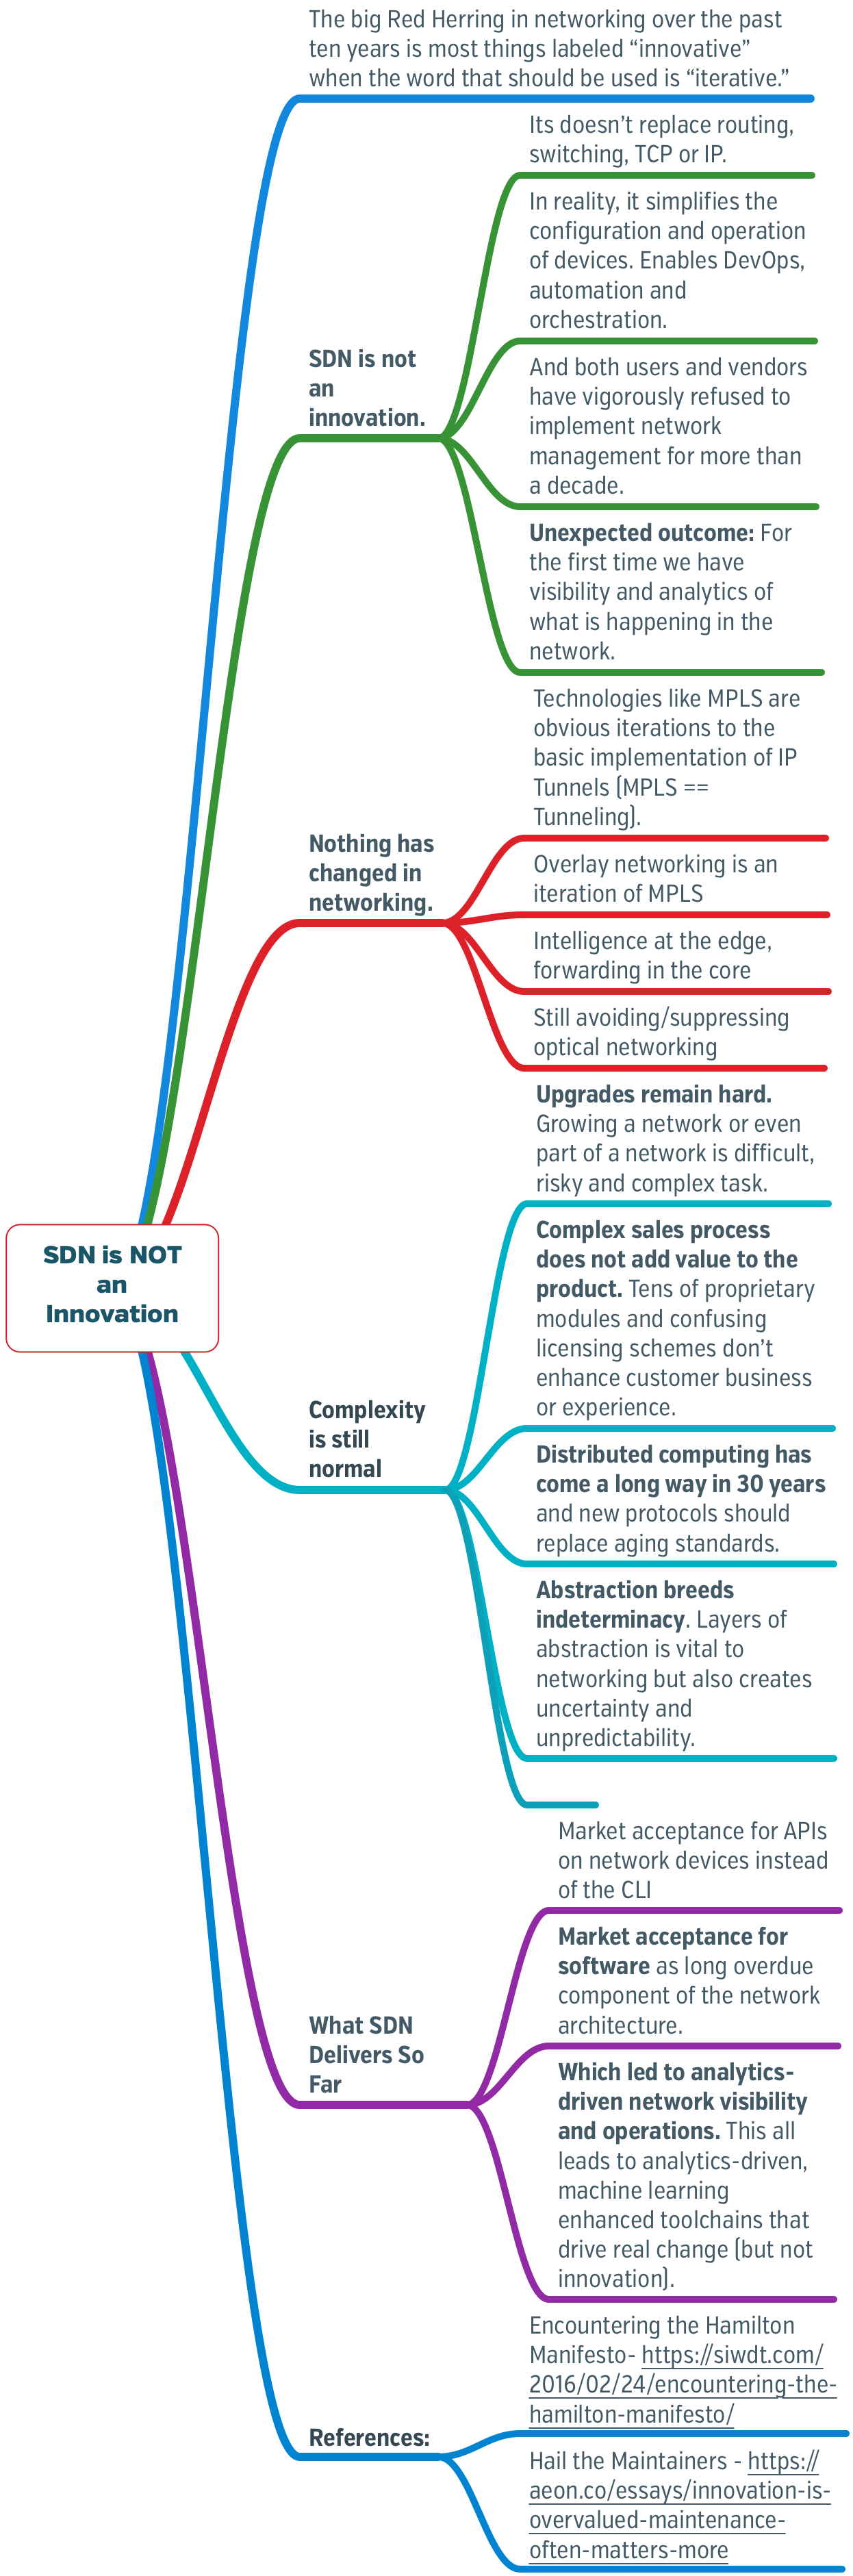 SDN is NOT an Innovation